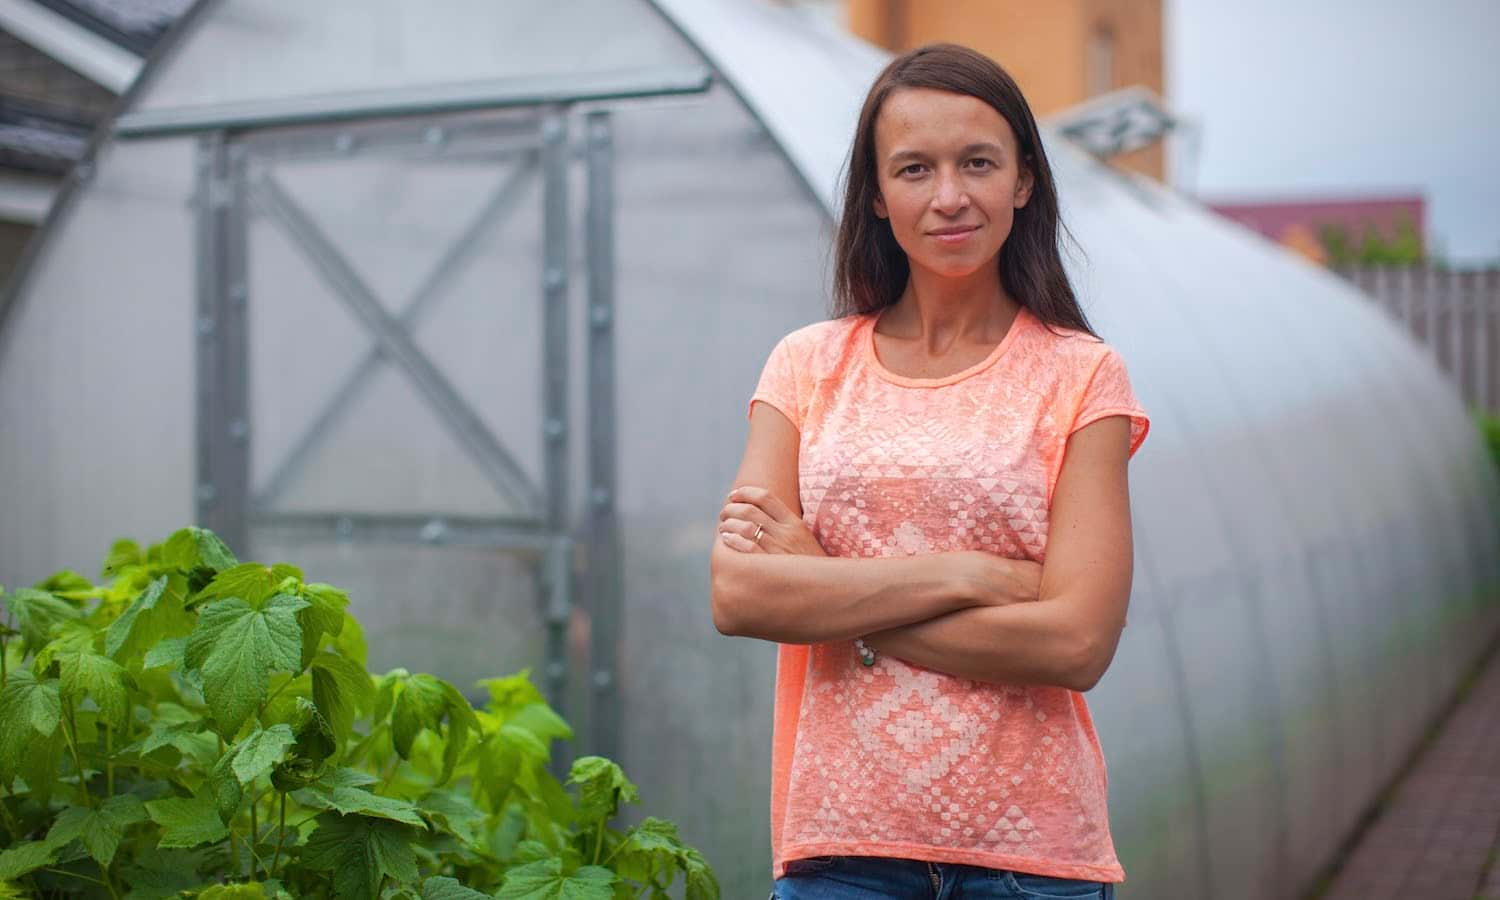 On the World Day of Social Justice, Food Tank is highlighting organizations that lend support to underserved farmers, changing the face of farming.